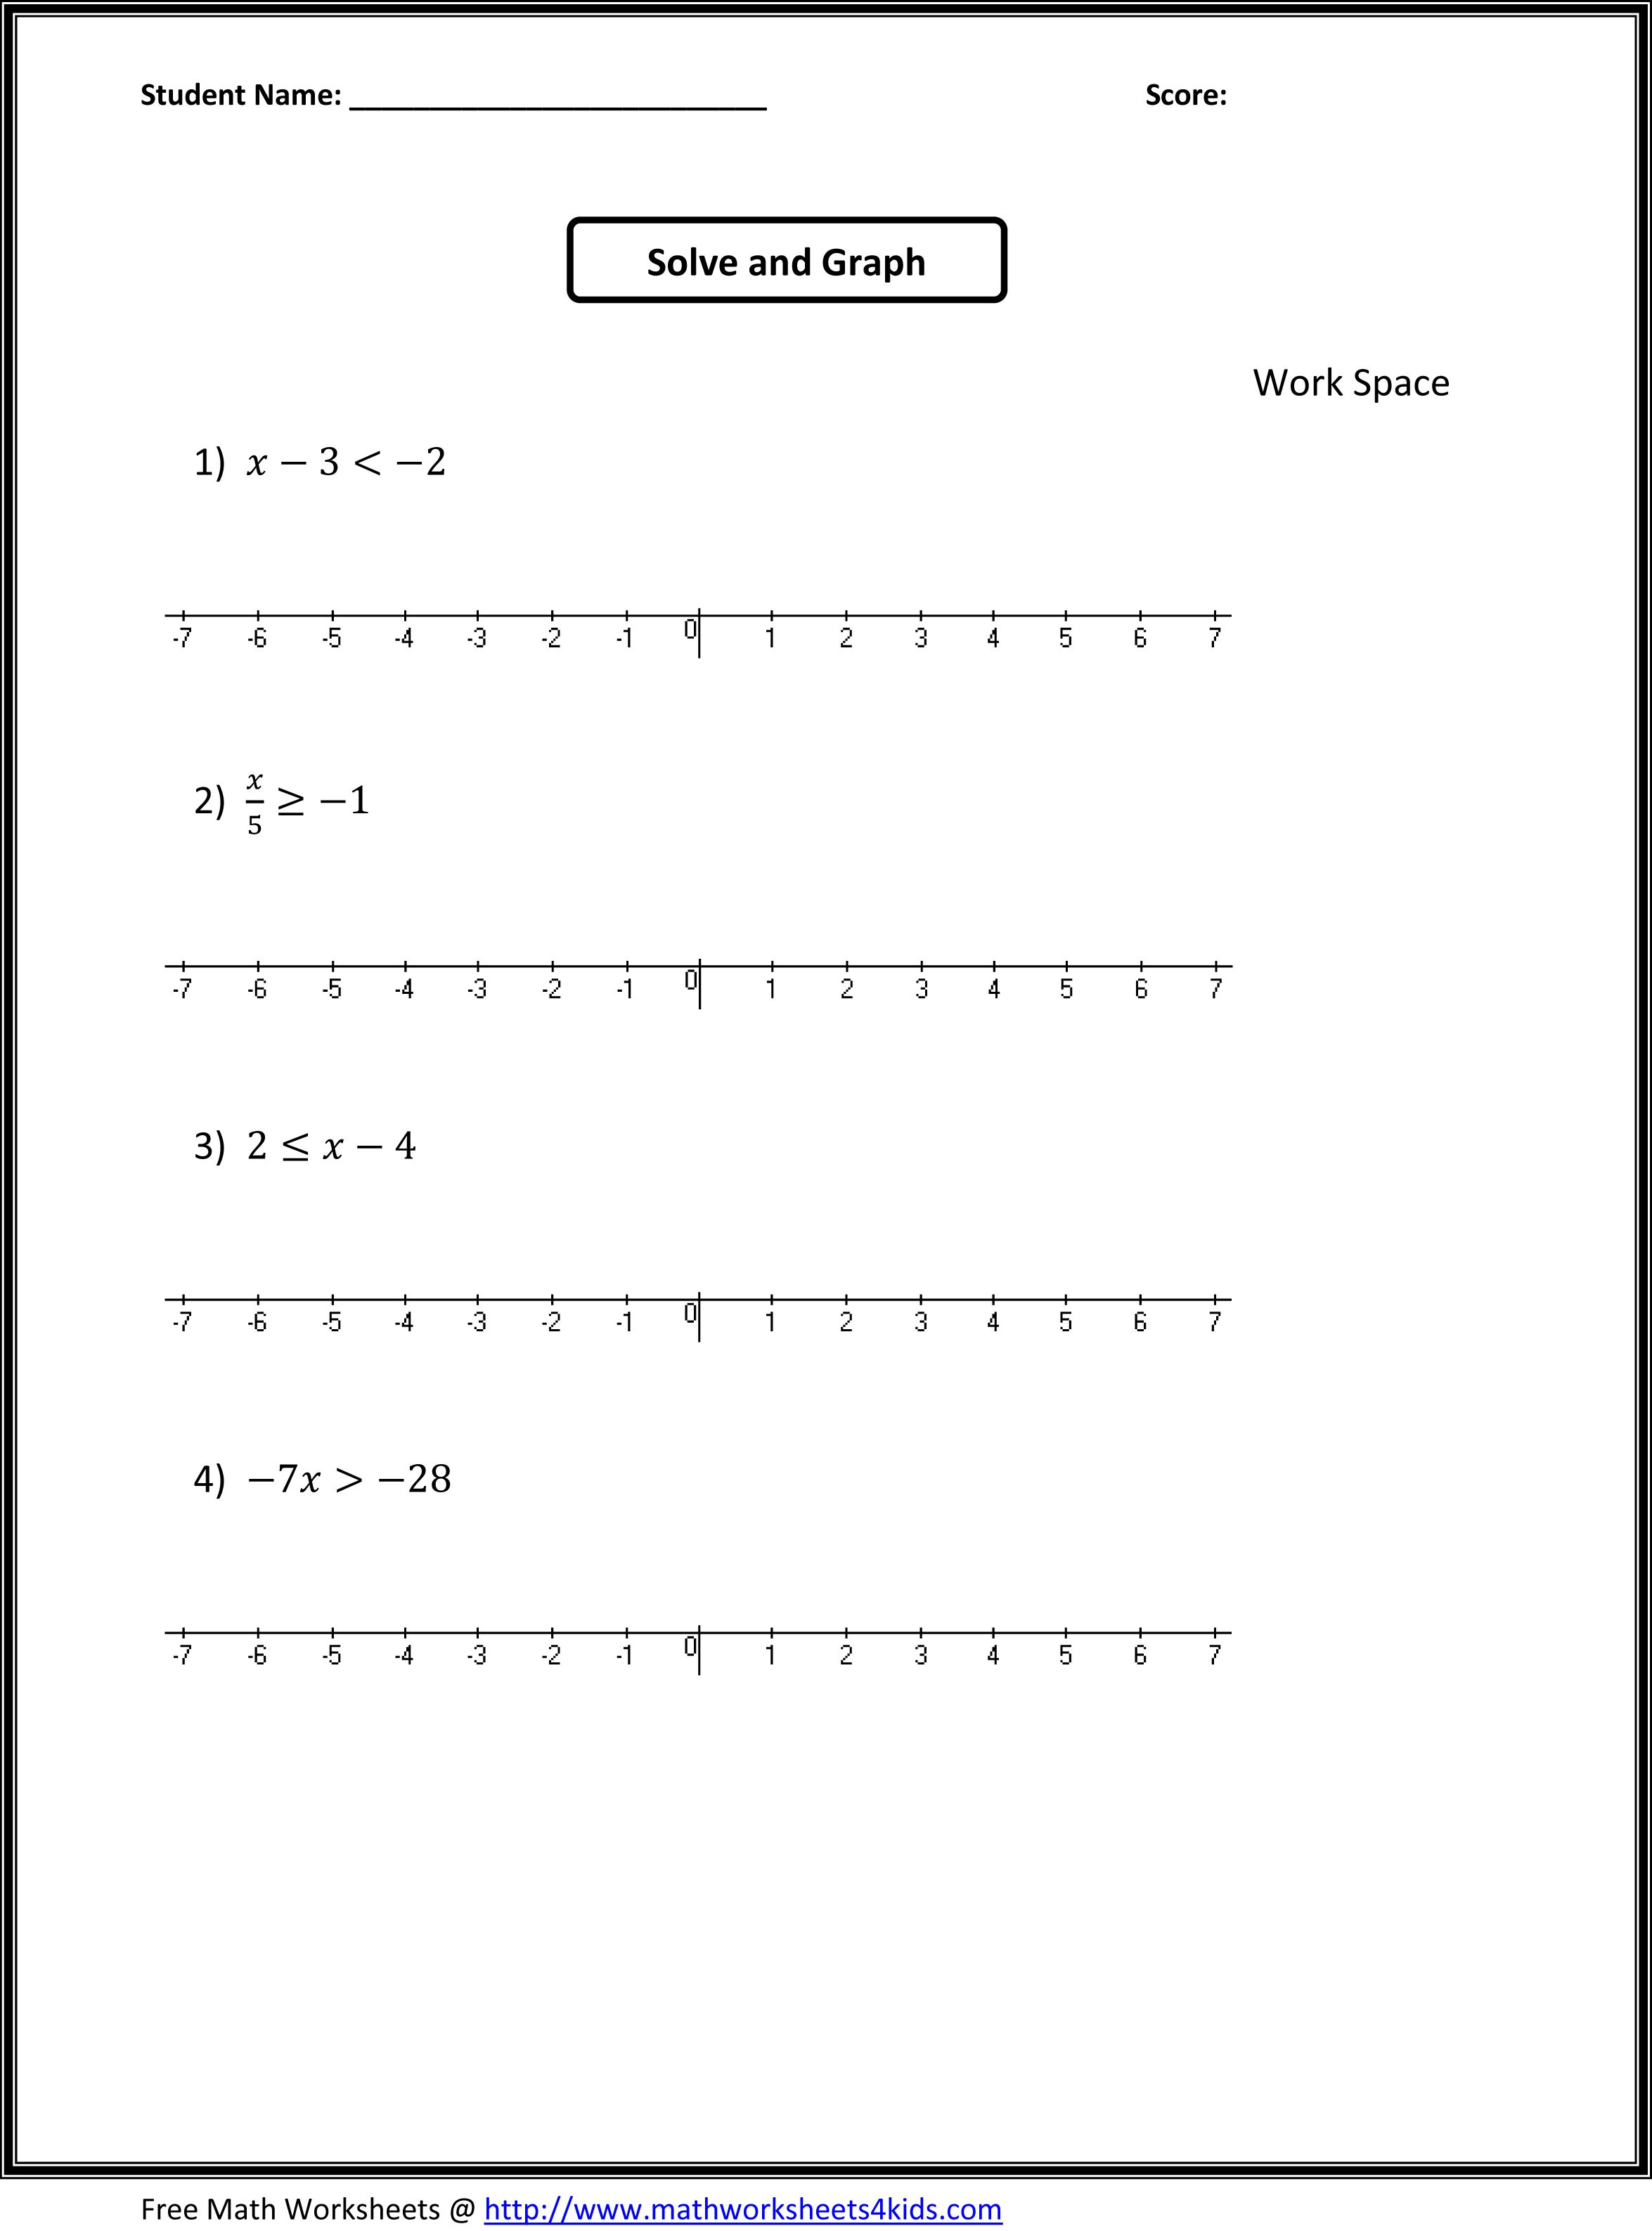 math worksheet : 1000 images about math on pinterest  7th grade math worksheets  : Math Practice Worksheets For 8th Grade